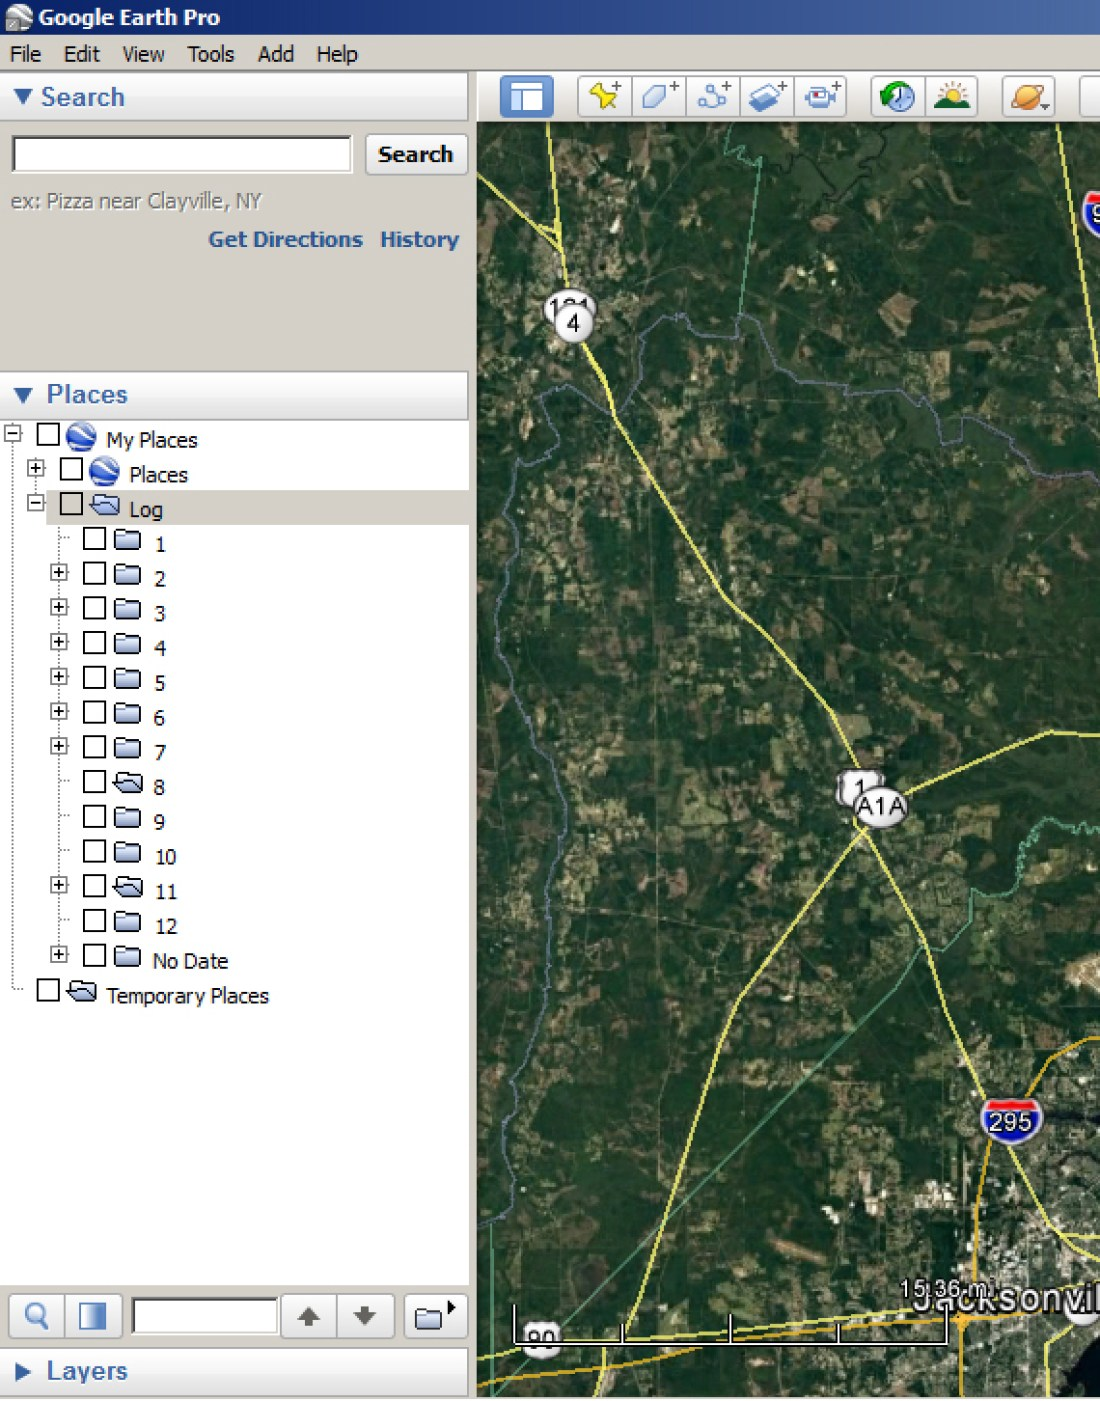 How to use Google Earth as a Fishing Log 2